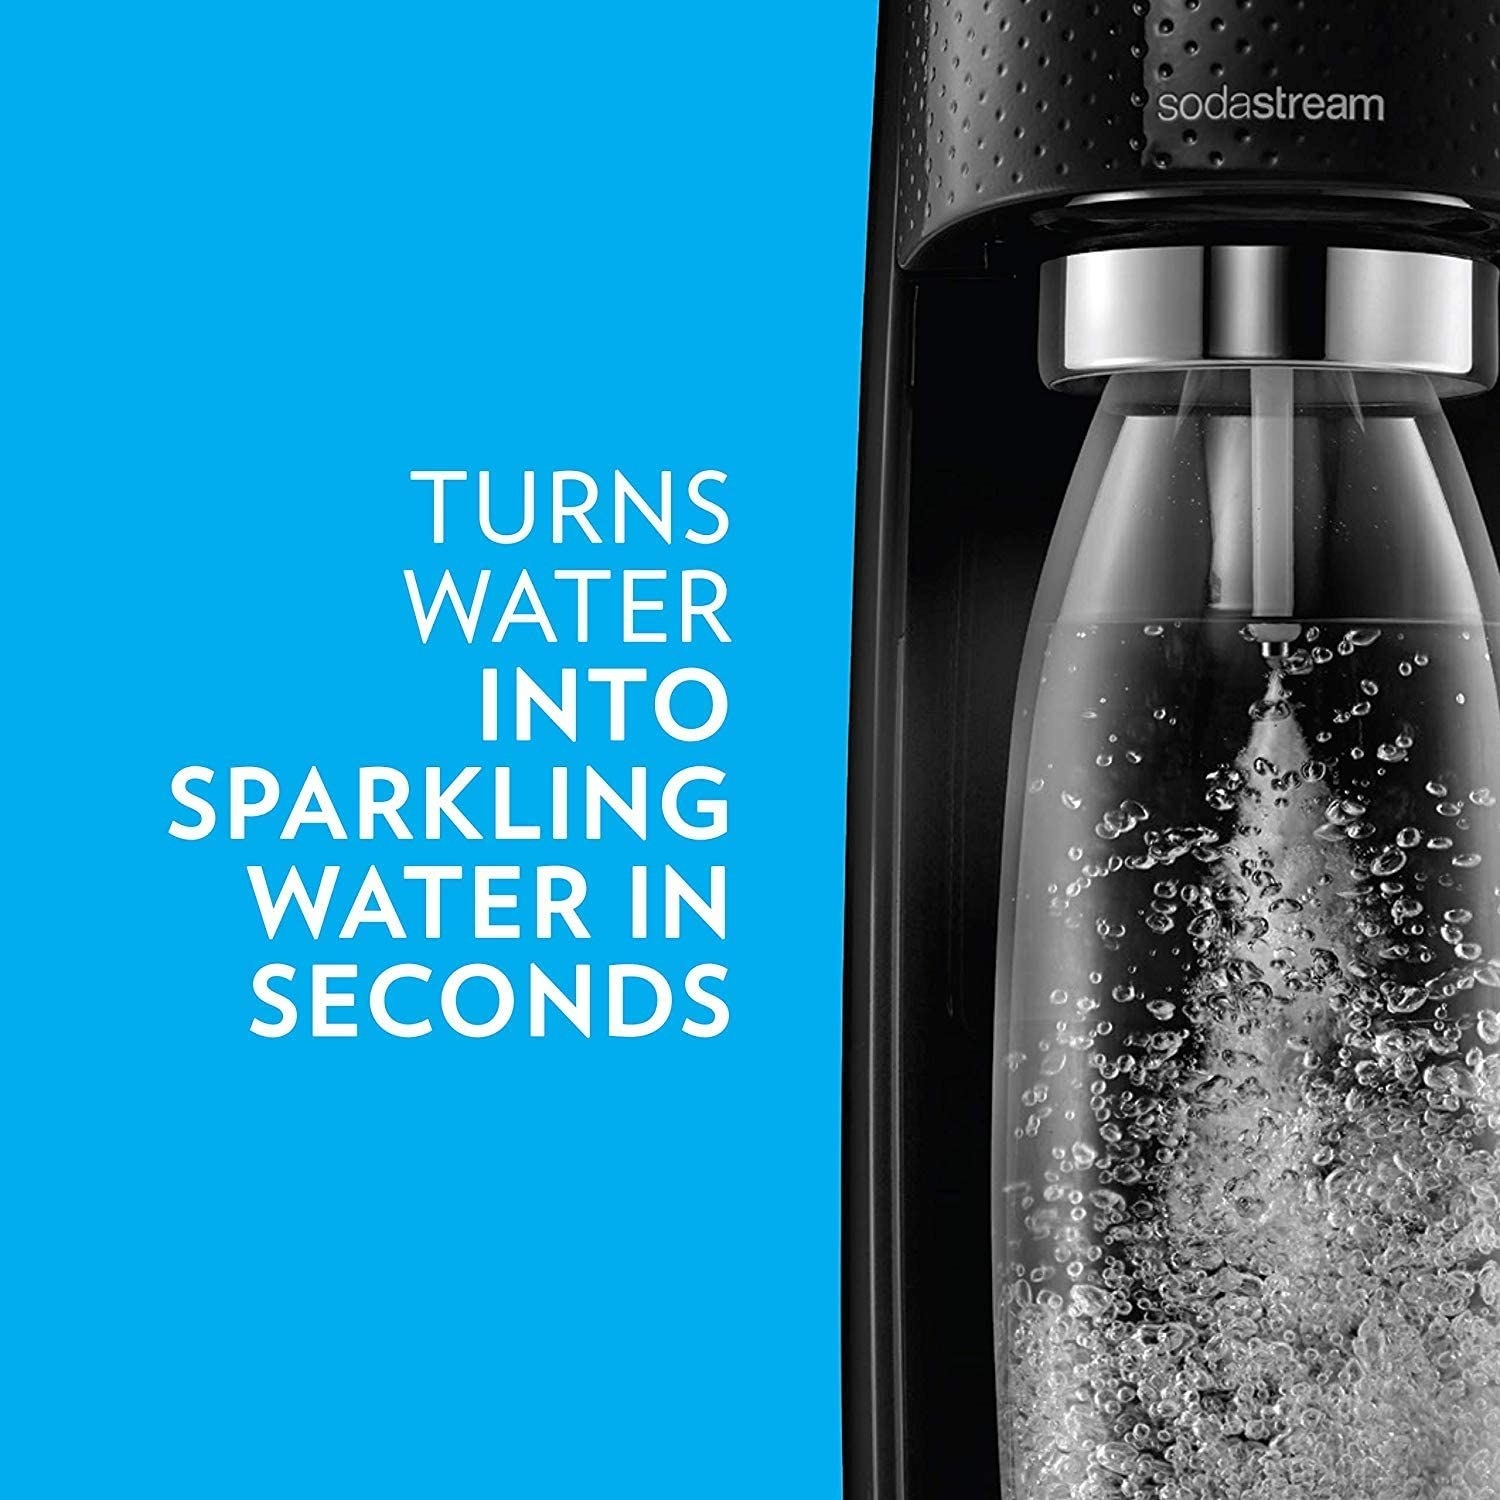 The machine in black with a canister of carbonated water